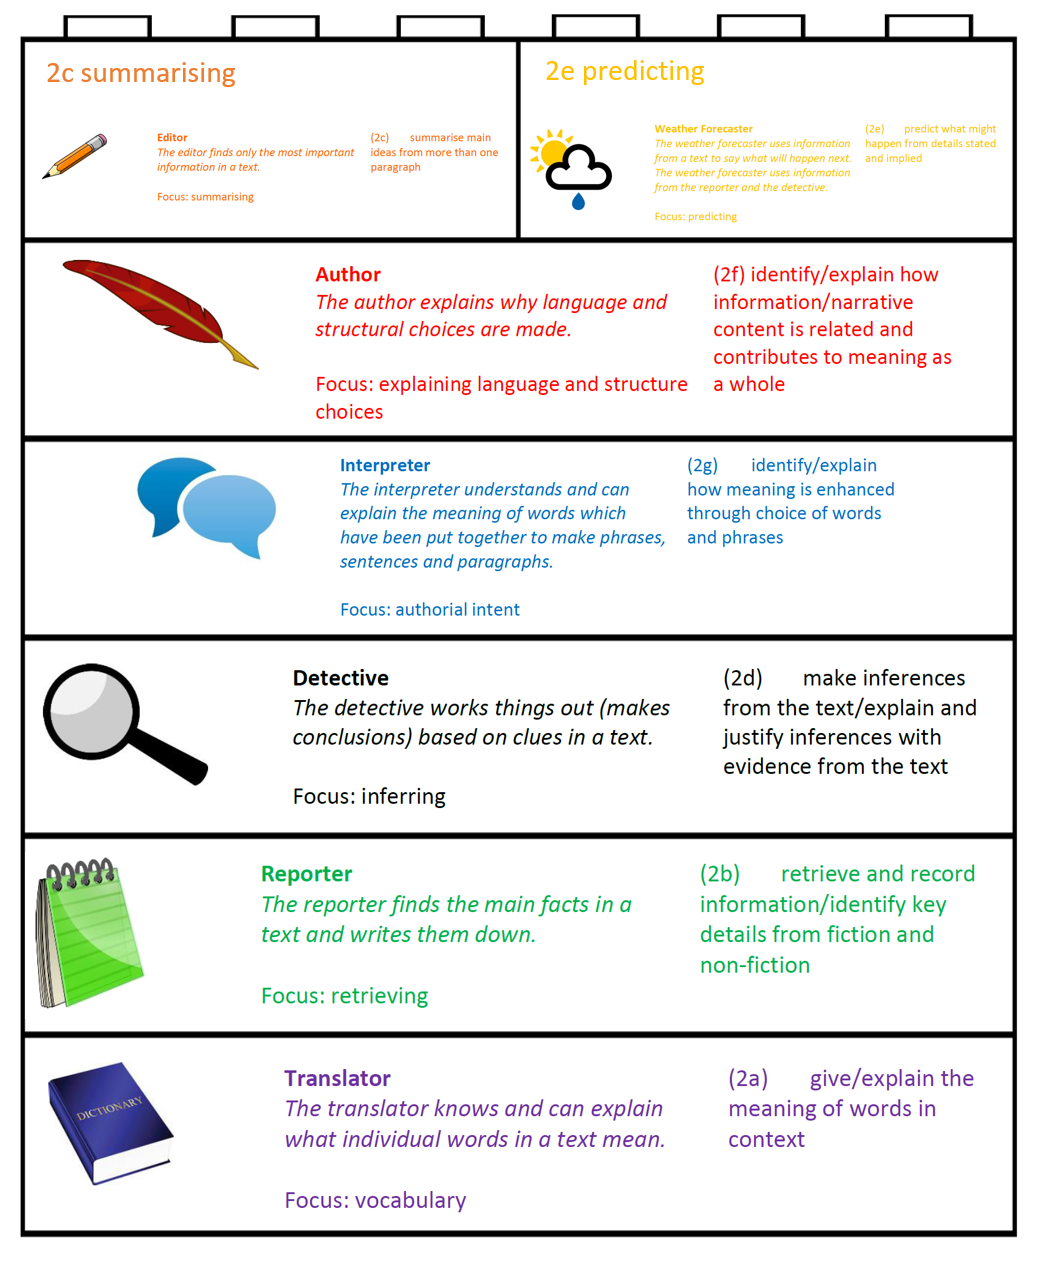 the instructional model learning goals and success criteria